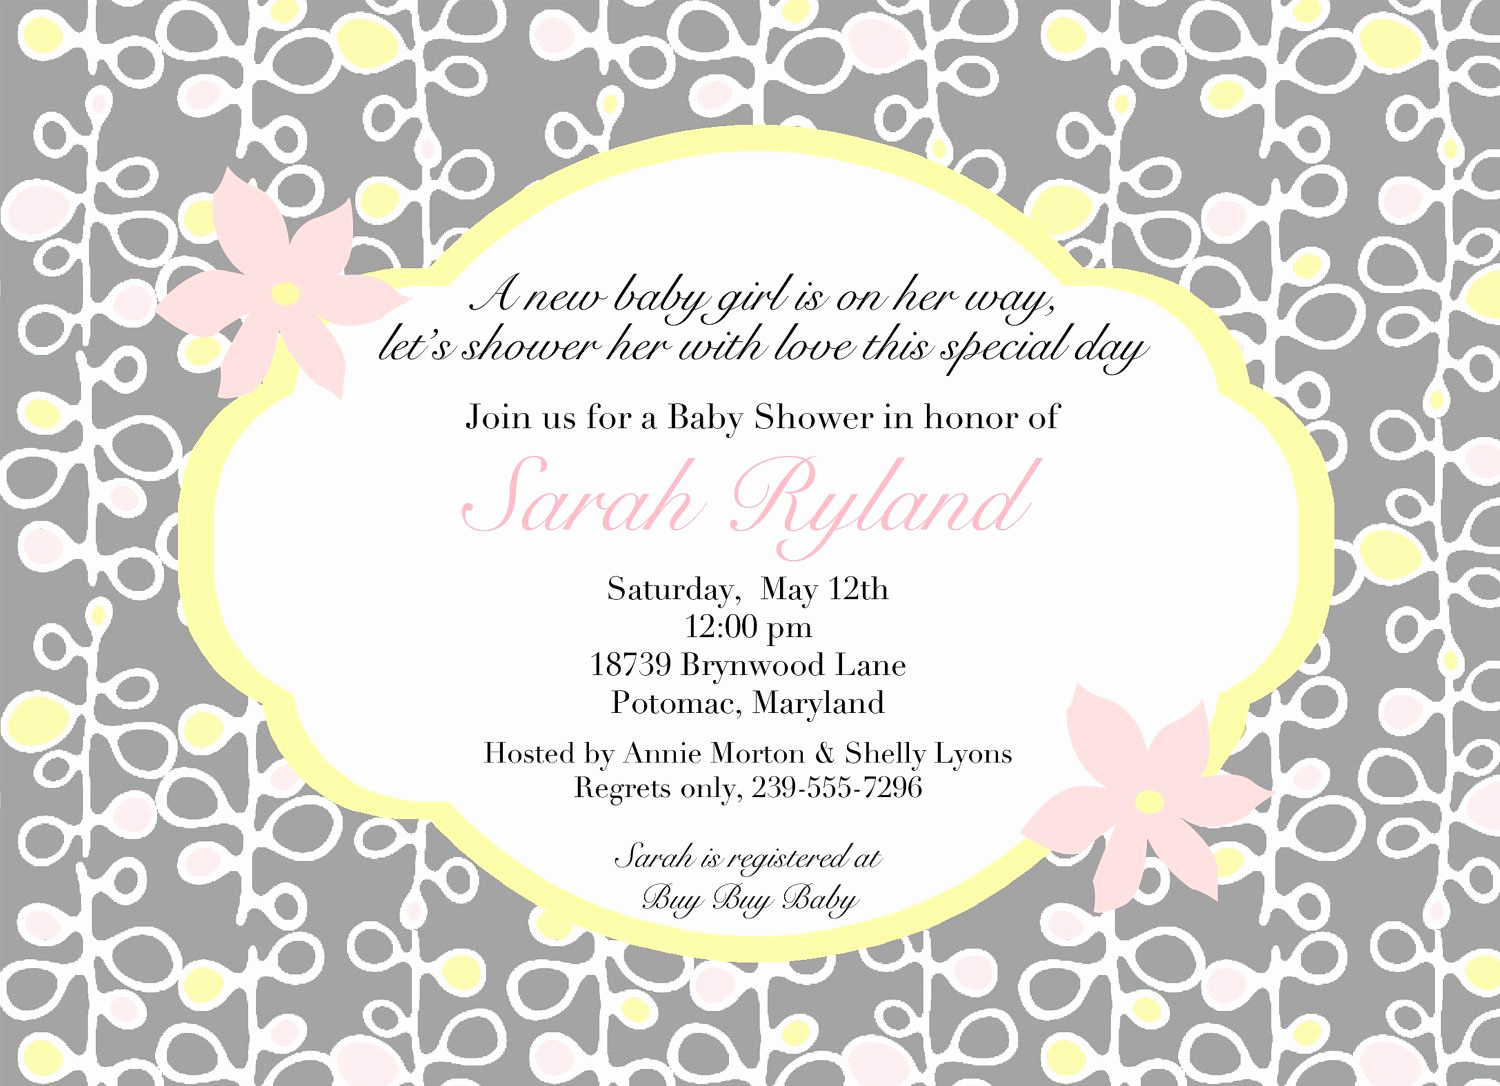 Baby Shower Invitation Message Unique Download Free Template Baby Shower Invitation Wordings